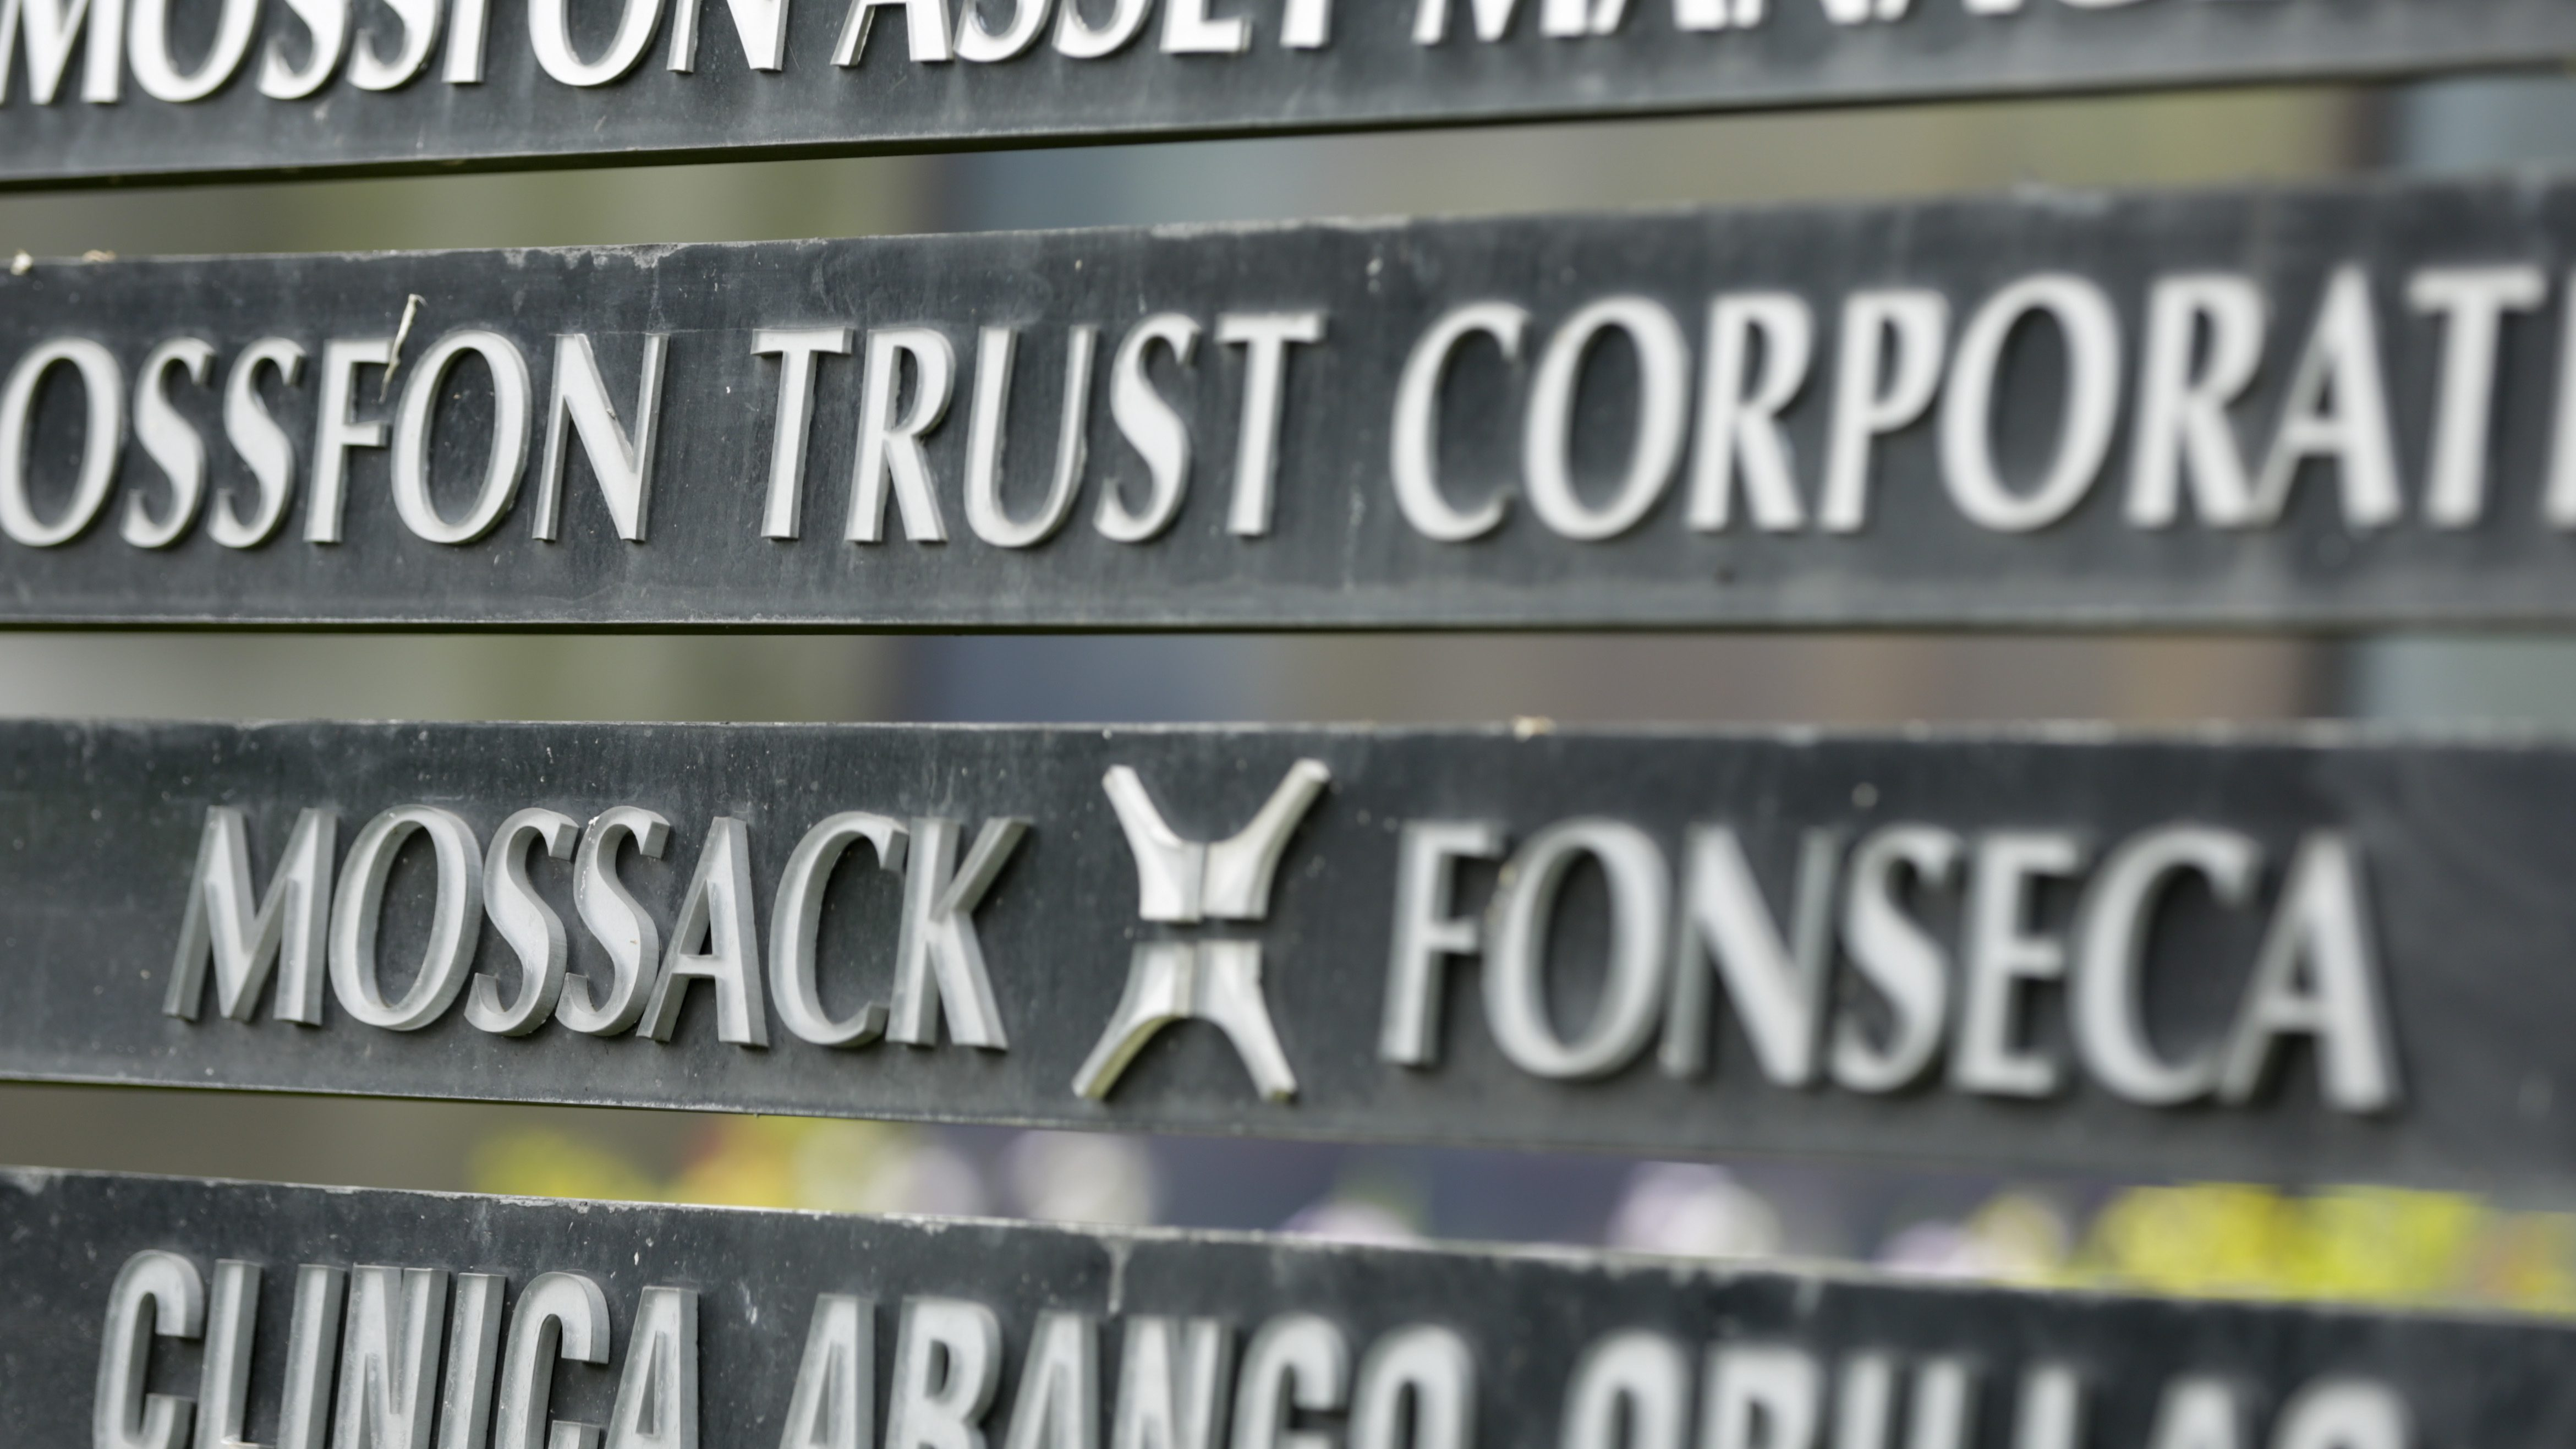 The Panama Papers revealed how law firm Mossack Fonseca enabled vast amounts of corruption through anonymous shell companies. Some US senators want to stop that happening domestically.